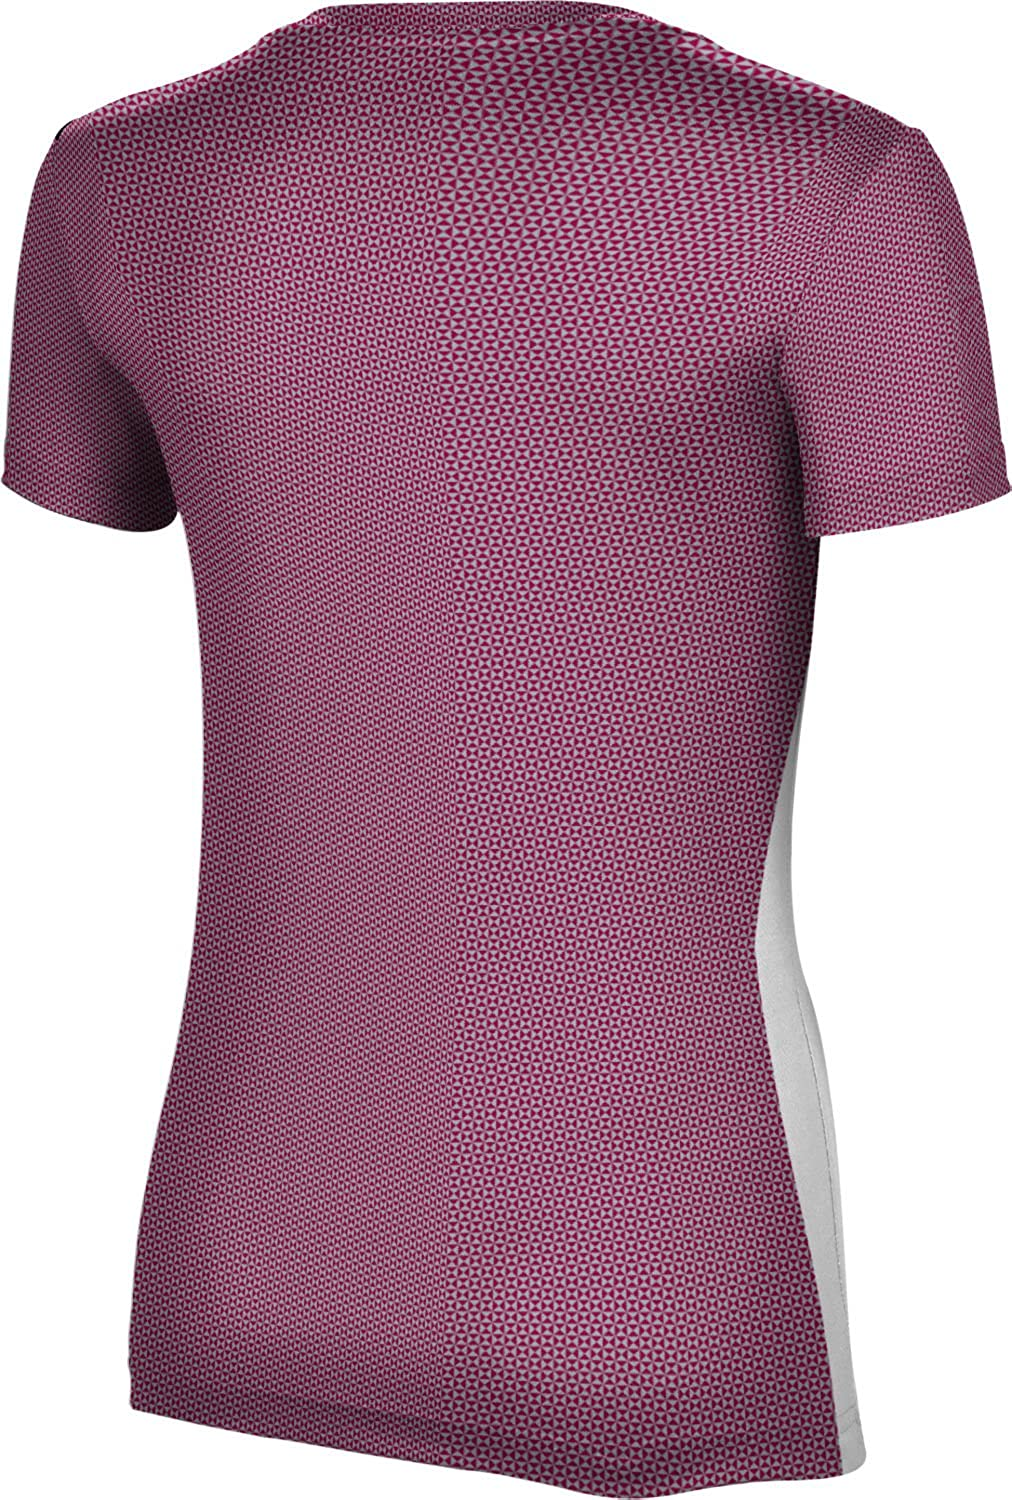 State University of New York at Potsdam Girls' Performance T-Shirt (Embrace) F9A45 Red and Gray